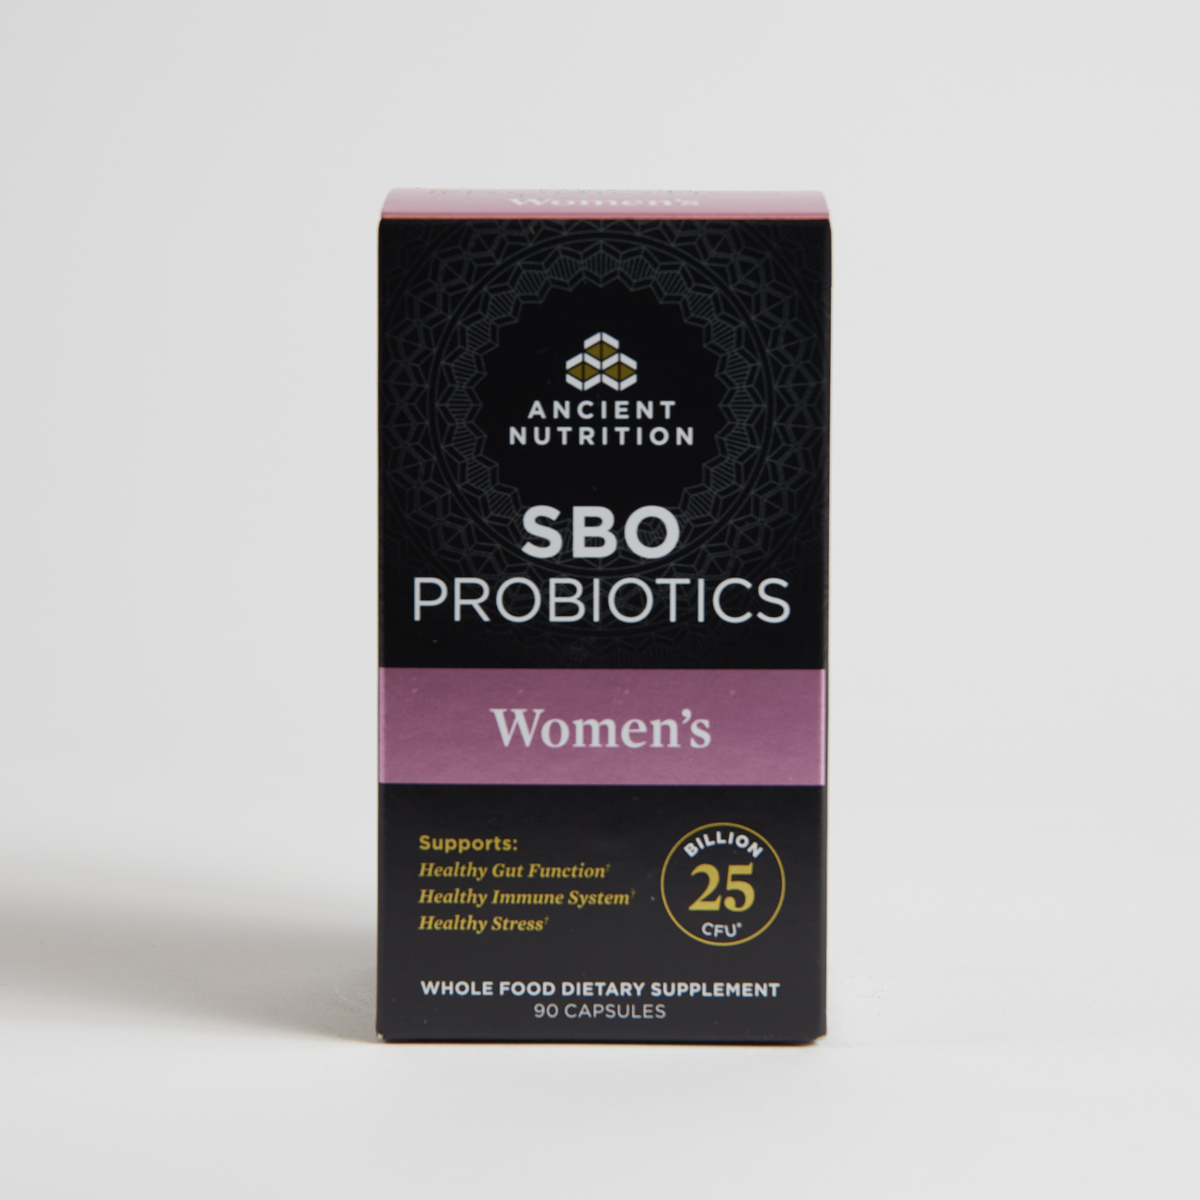 Ancient Nutrition SBO Probiotic Women's - 90 Count